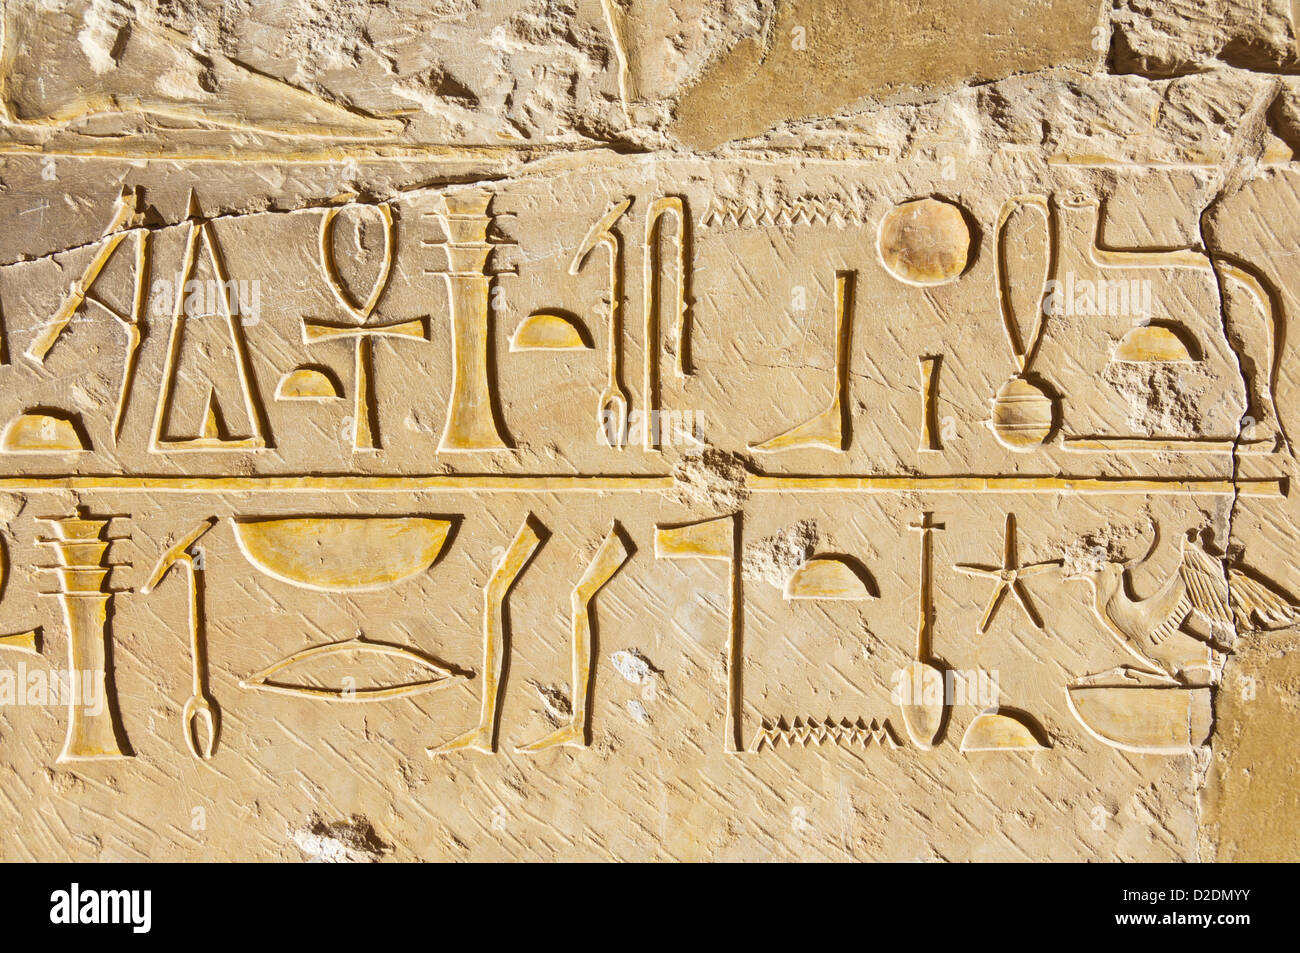 Hieroglyphics on the pillars of the portico to the third terrace of the Temple of Hatshepsut on the West bank of - Stock Image